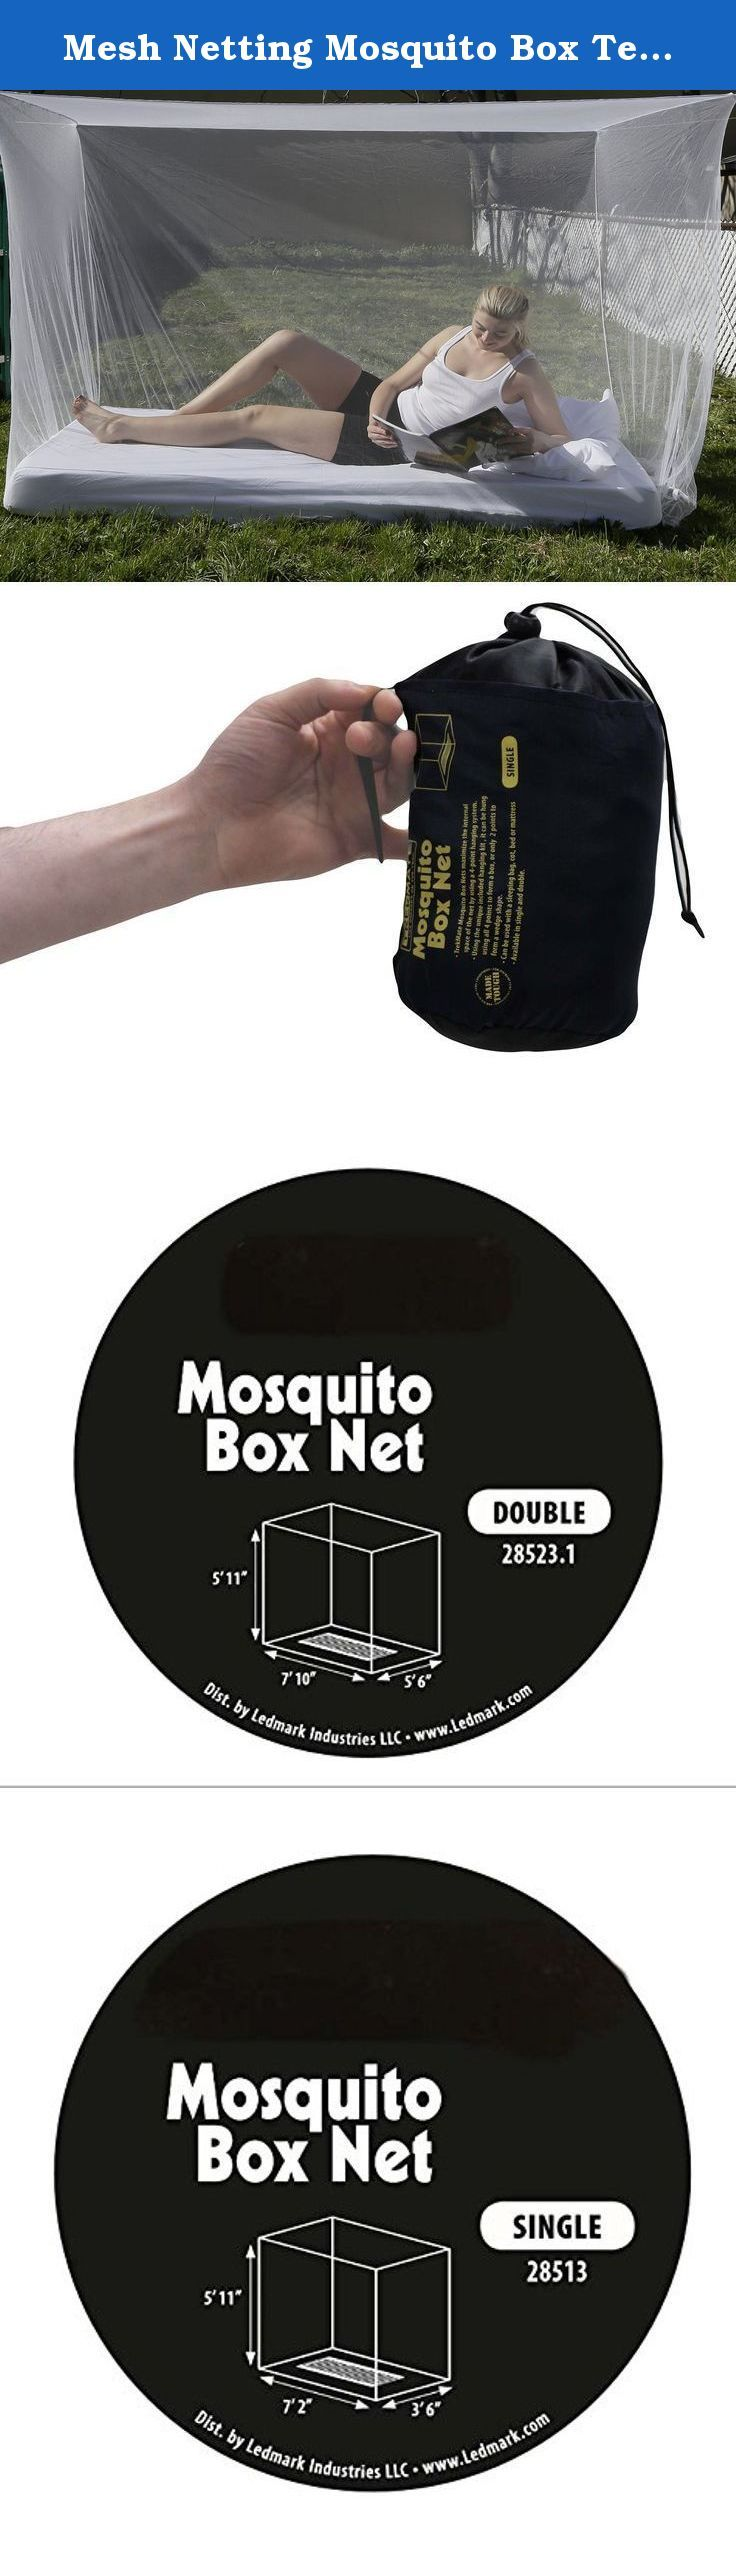 Mesh Netting Mosquito Box Tent Single Or Double. This is one of the lightest and most compact wedge shaped mosquito nets. It is suitable for use both indoors and out in the bush requiring just one point of suspension and can easily be draped around a bed or sleep mat.The fine black mesh offers good levels of breathability and is easy to see through when you're on the inside looking out.